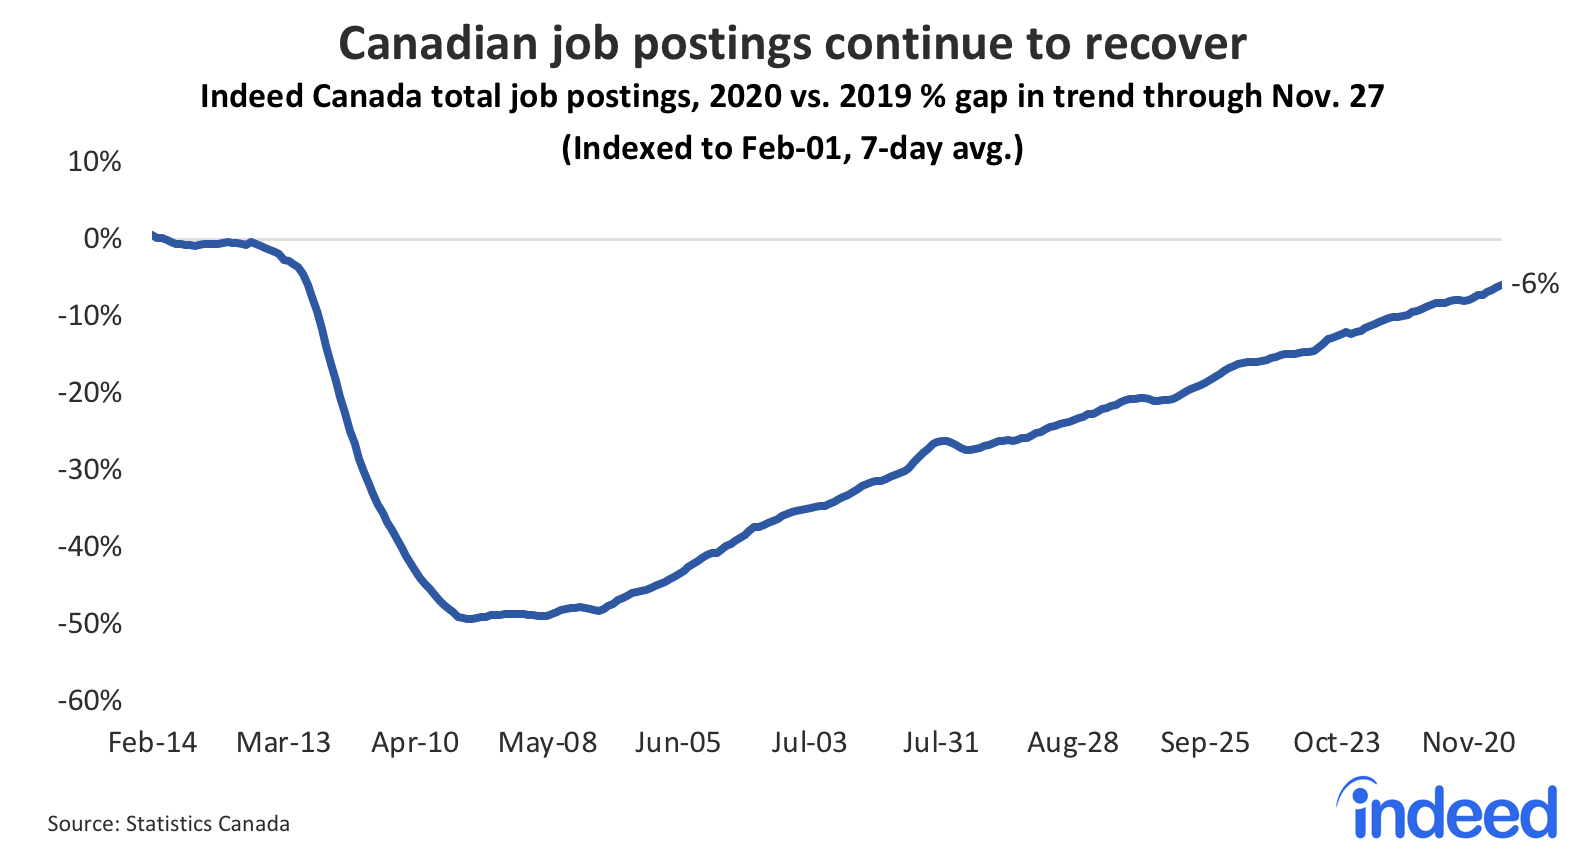 Line graph showing recovery for canadian job postings continues recovery but pace is slowing.